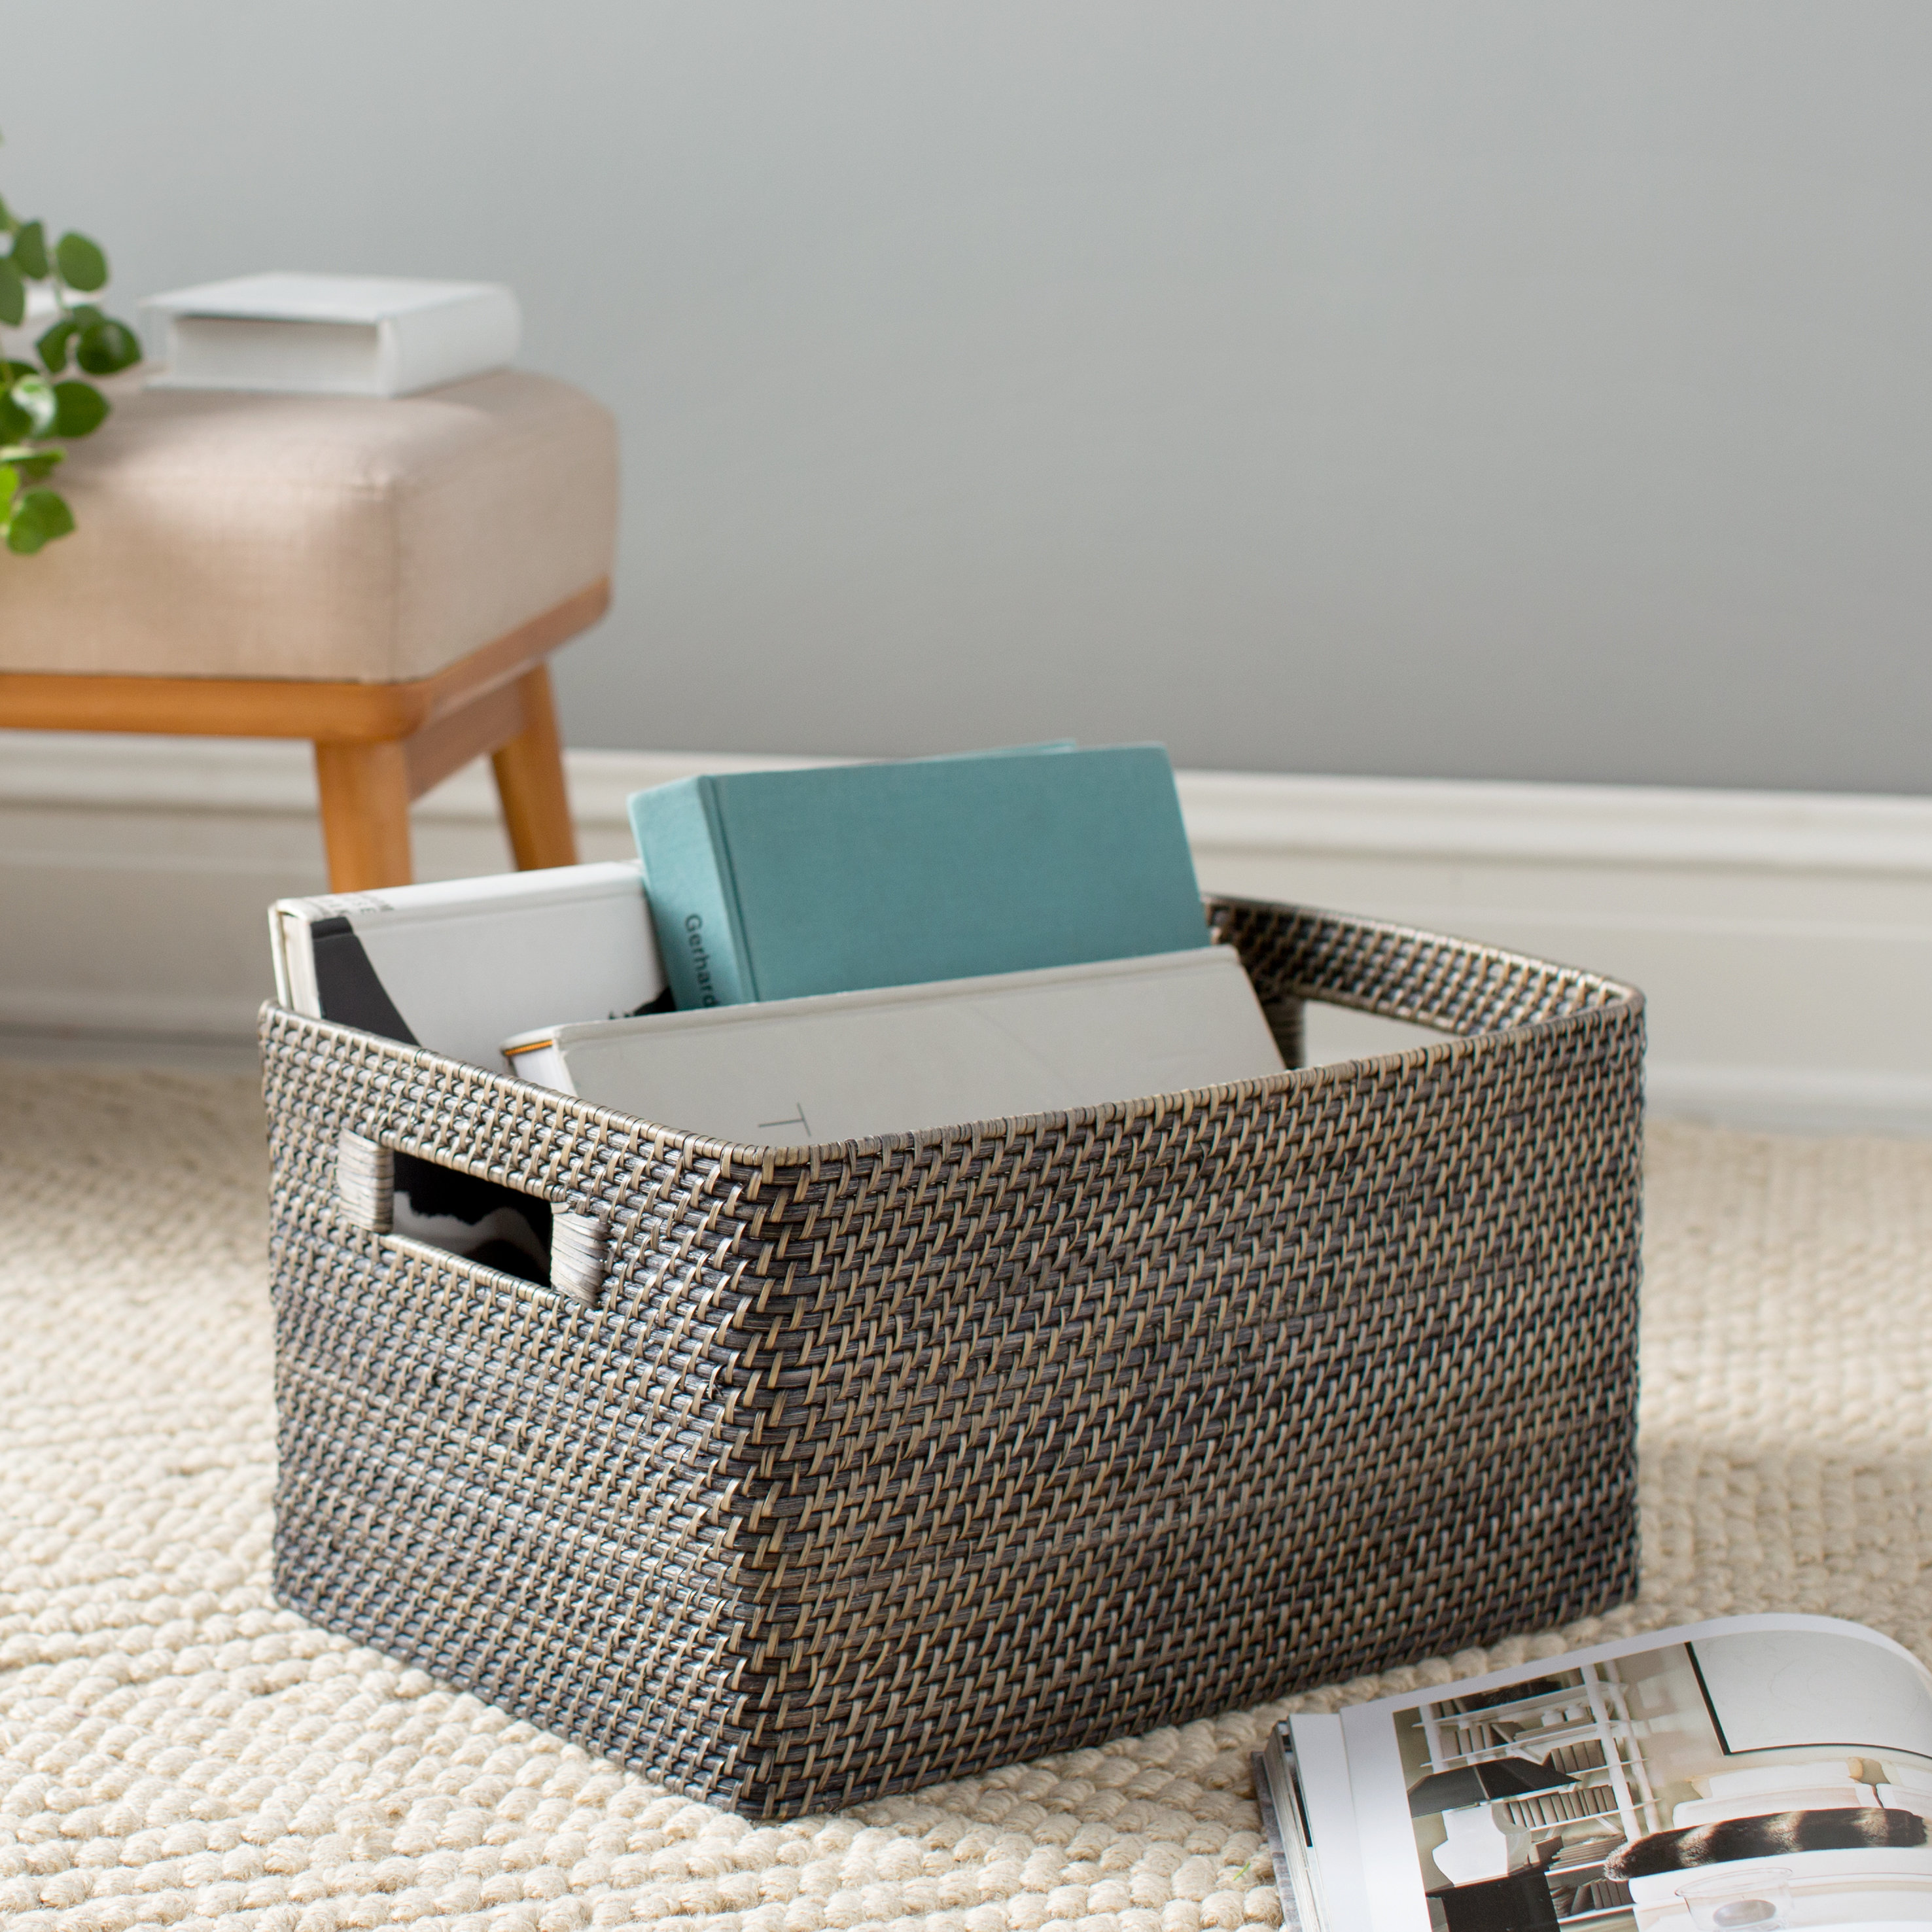 large flat baskets rectangular rattan storage basket wire accent table quickview small grill mid century modern dining room office end wooden bedside cabinets high patio green